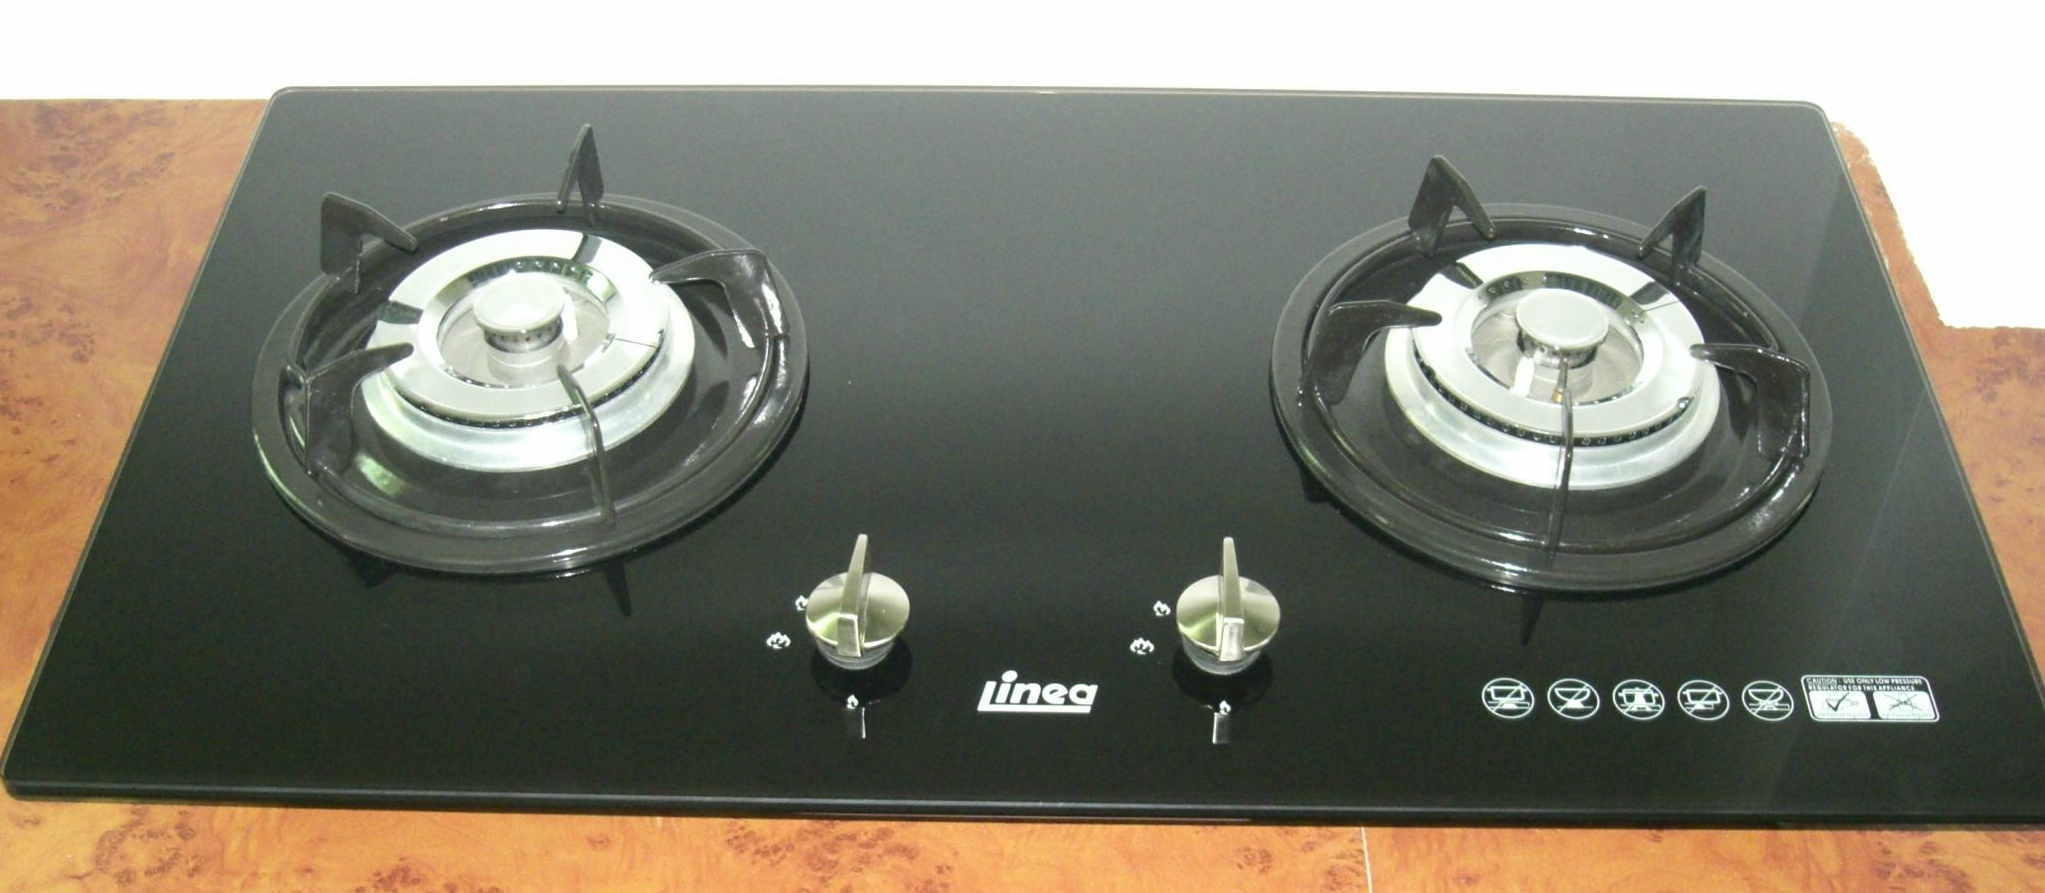 Flat Top Stove Prices Stoves Glass Stoves